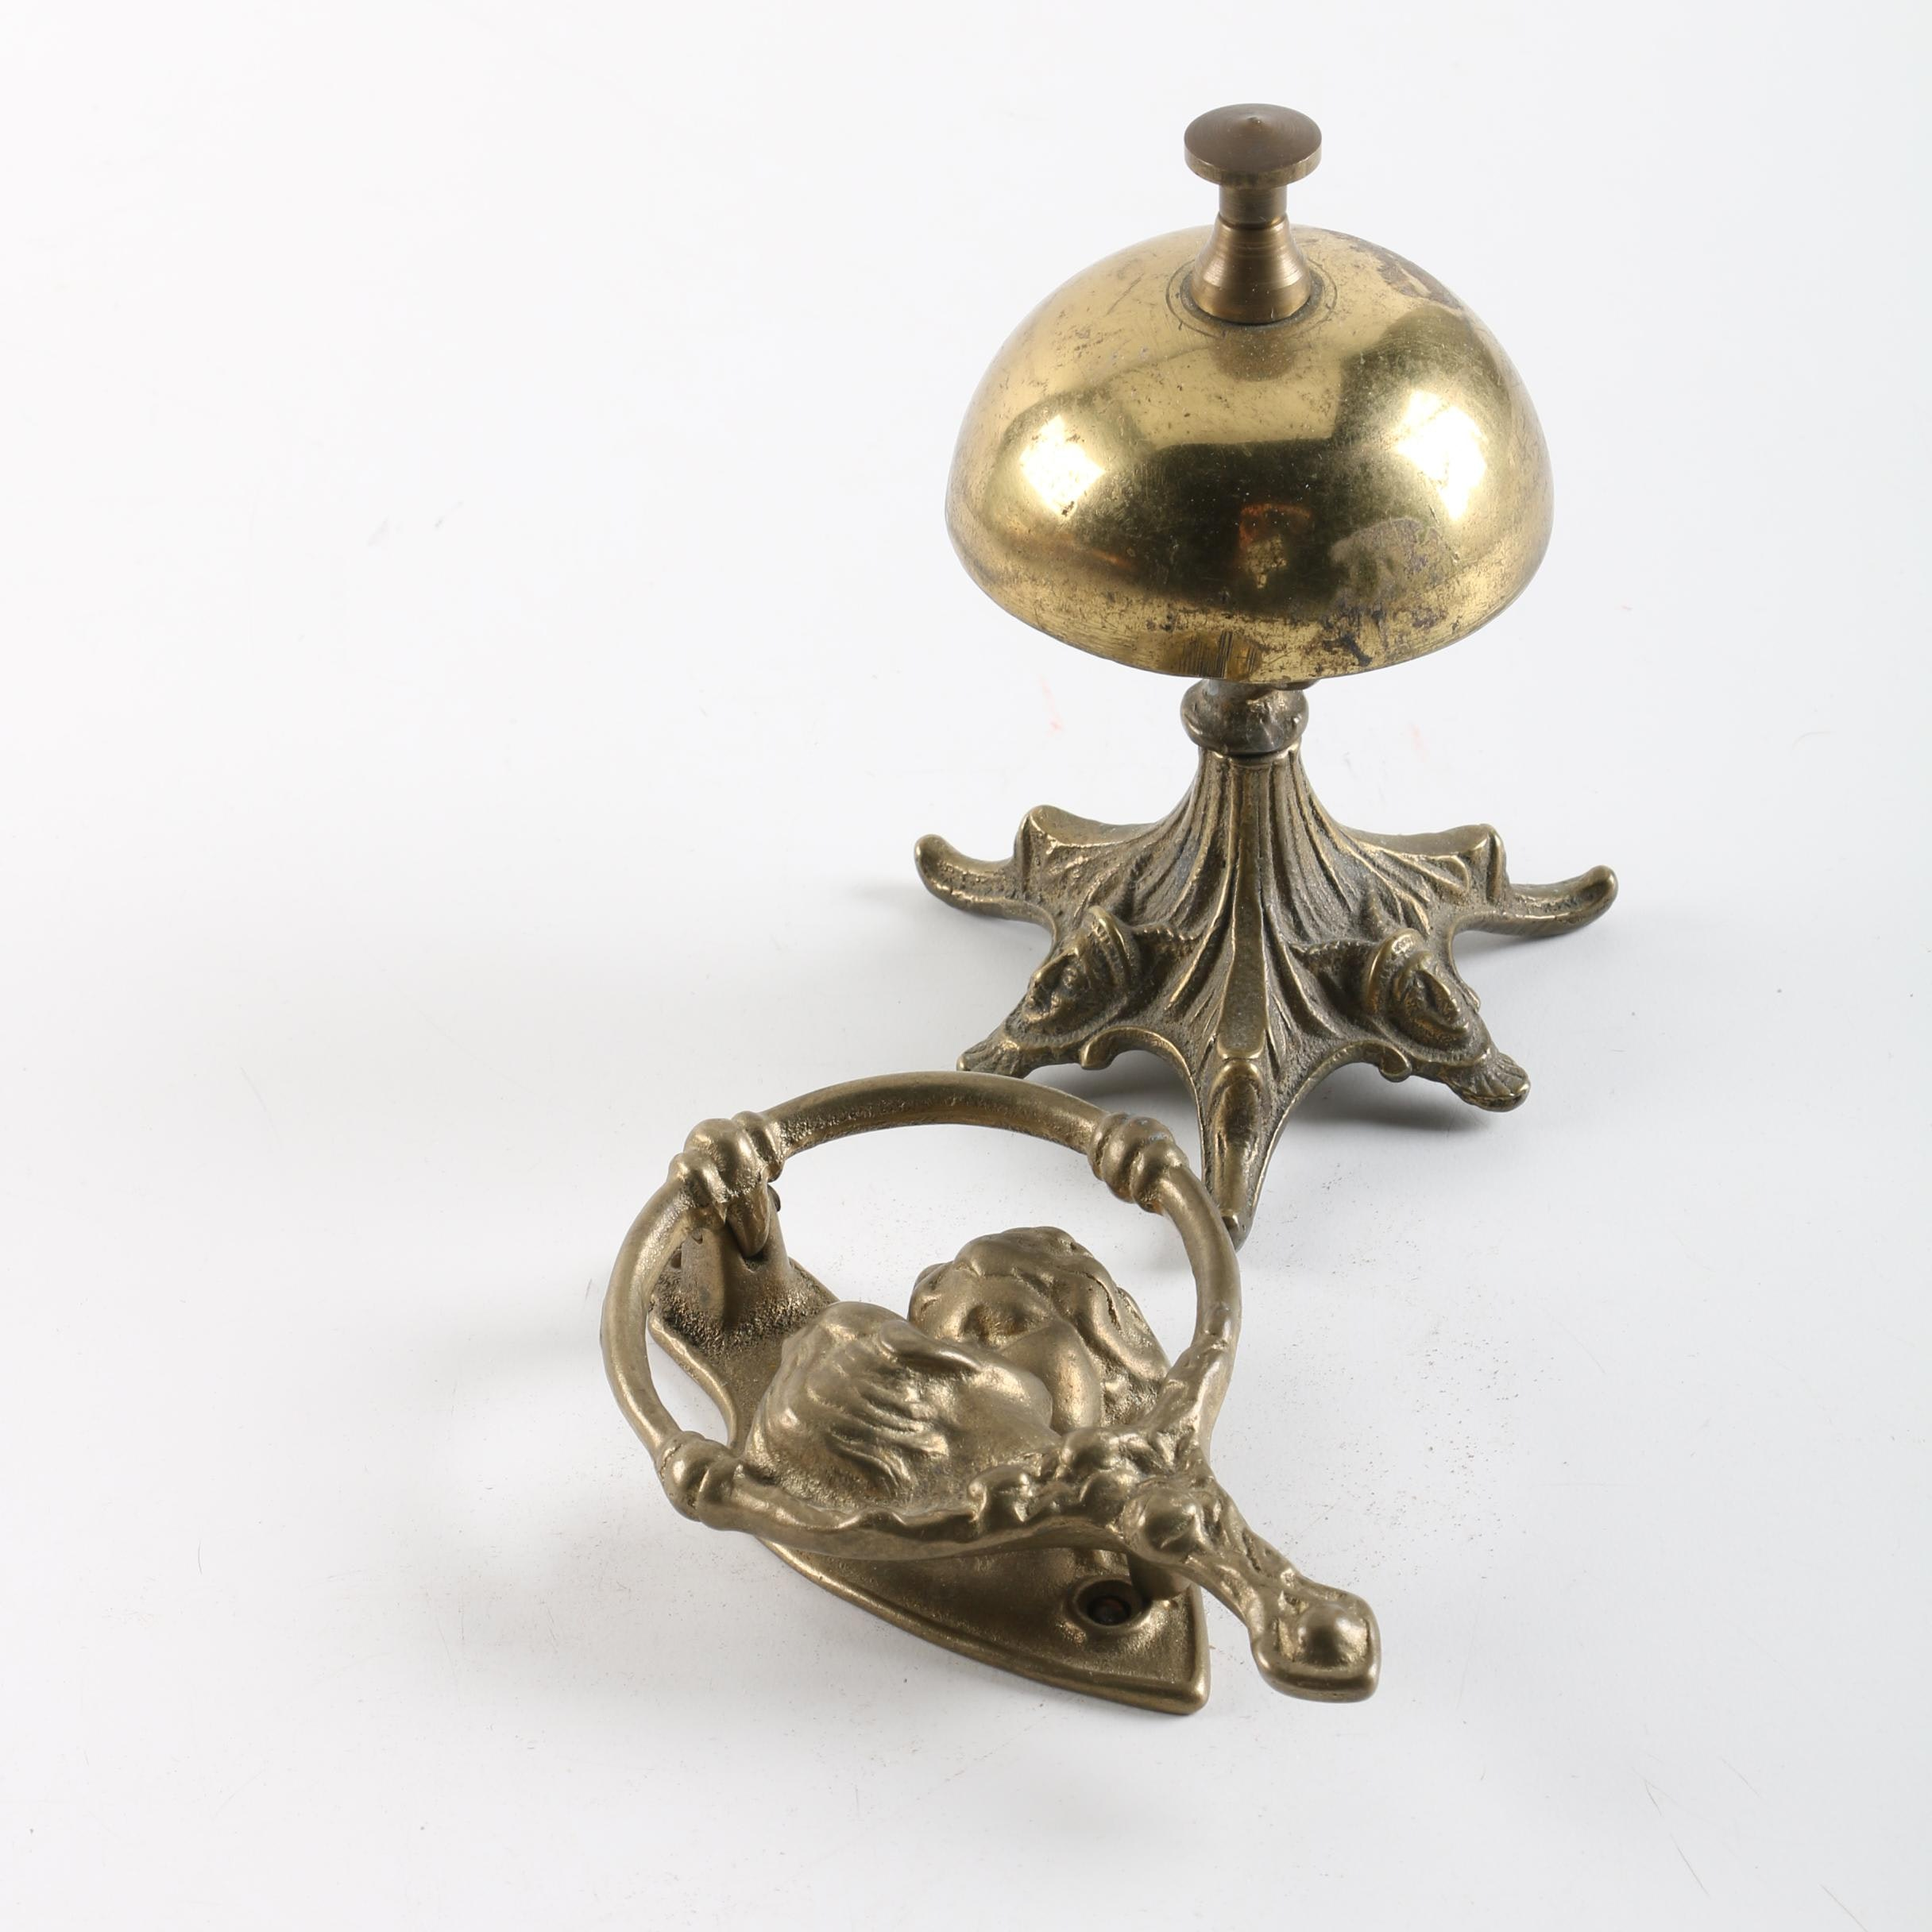 Brass Service Desk Bell With an Ornate Door Knocker